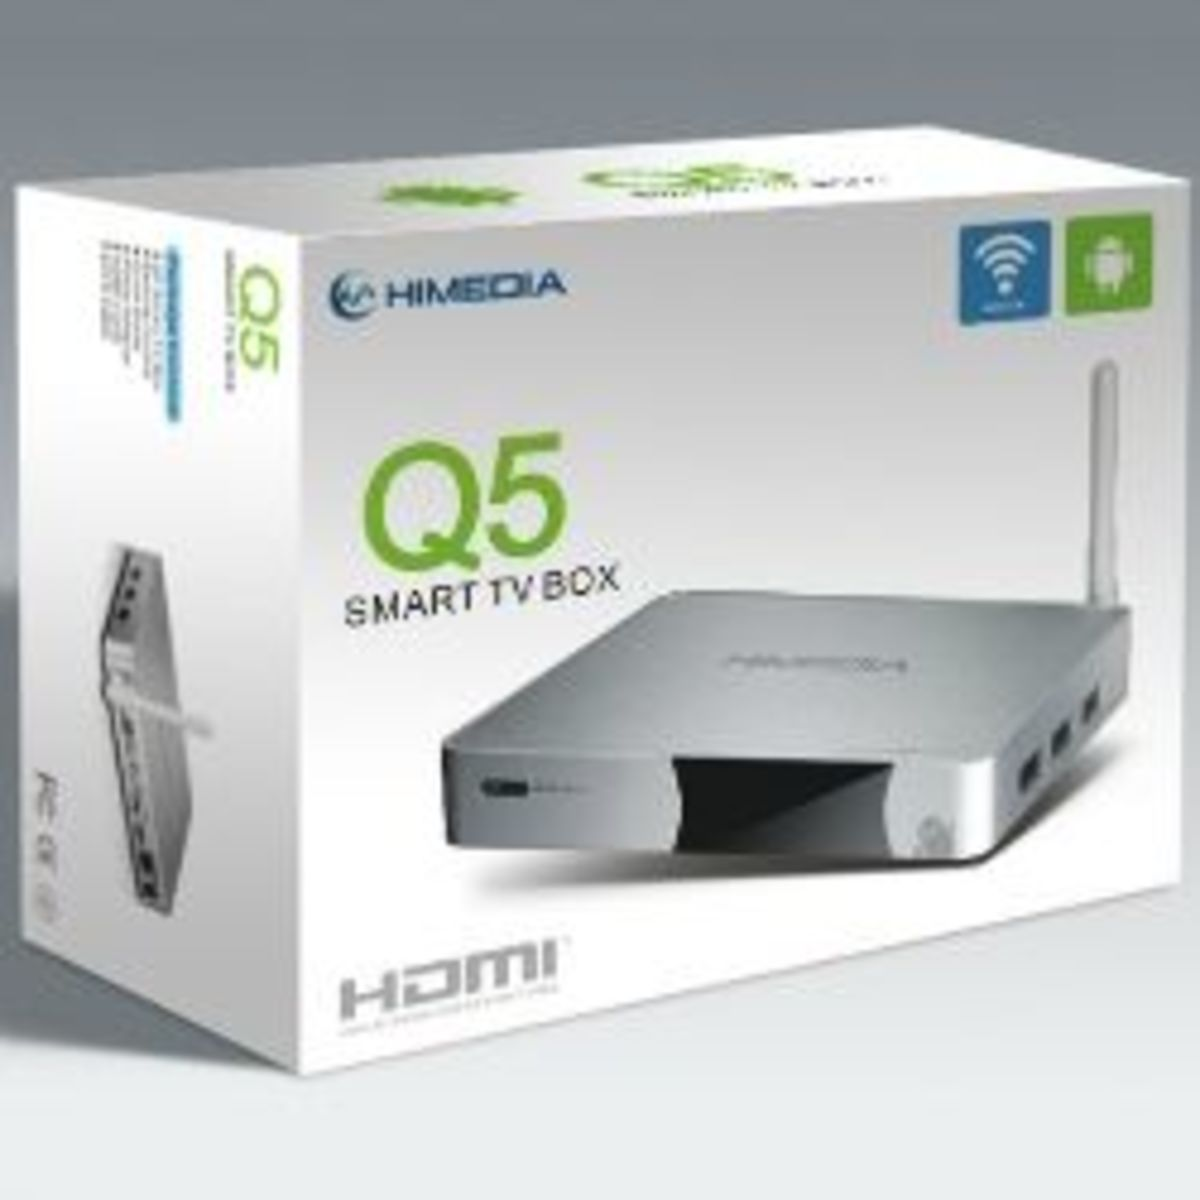 himedia-q5-android-media-player-review